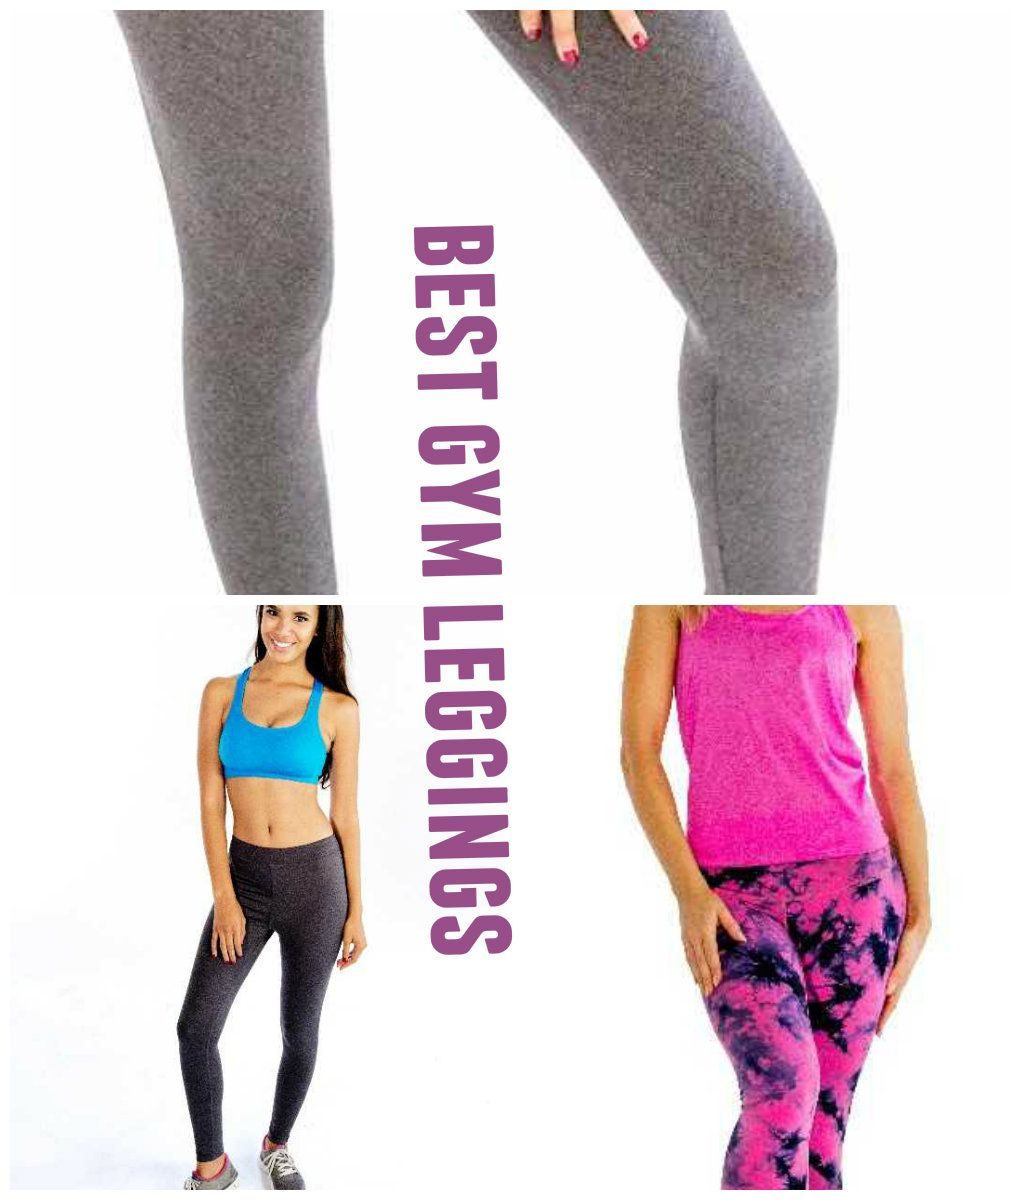 63b8a441041 Get The Best Gym Leggings From Gym Clothes, The Reputed Online ...